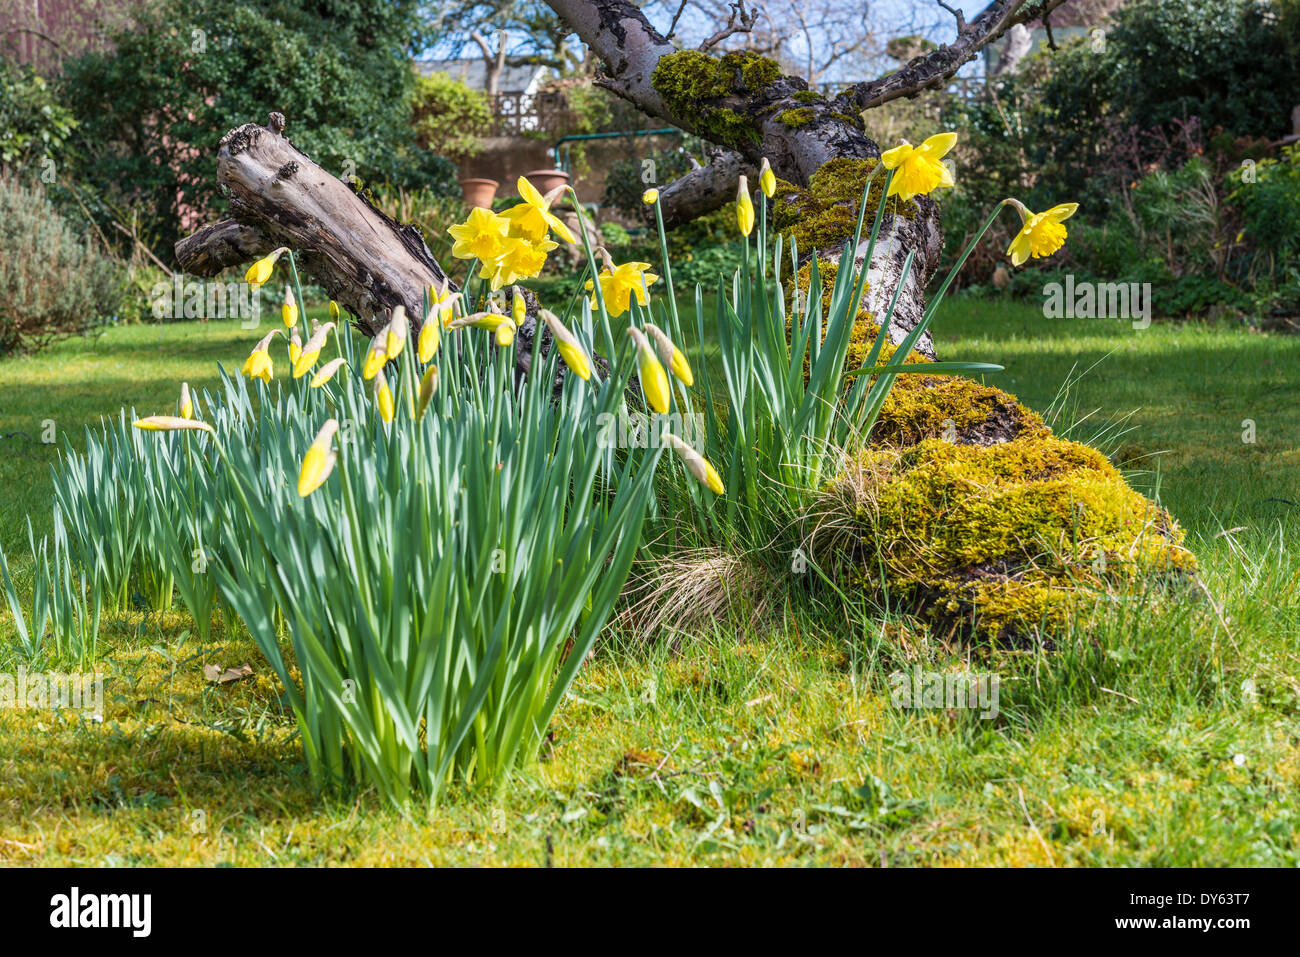 Daffodils growing in garden under old apple tree in spring. Seventh of sequence of 10 (ten) images photographed over five weeks. - Stock Image